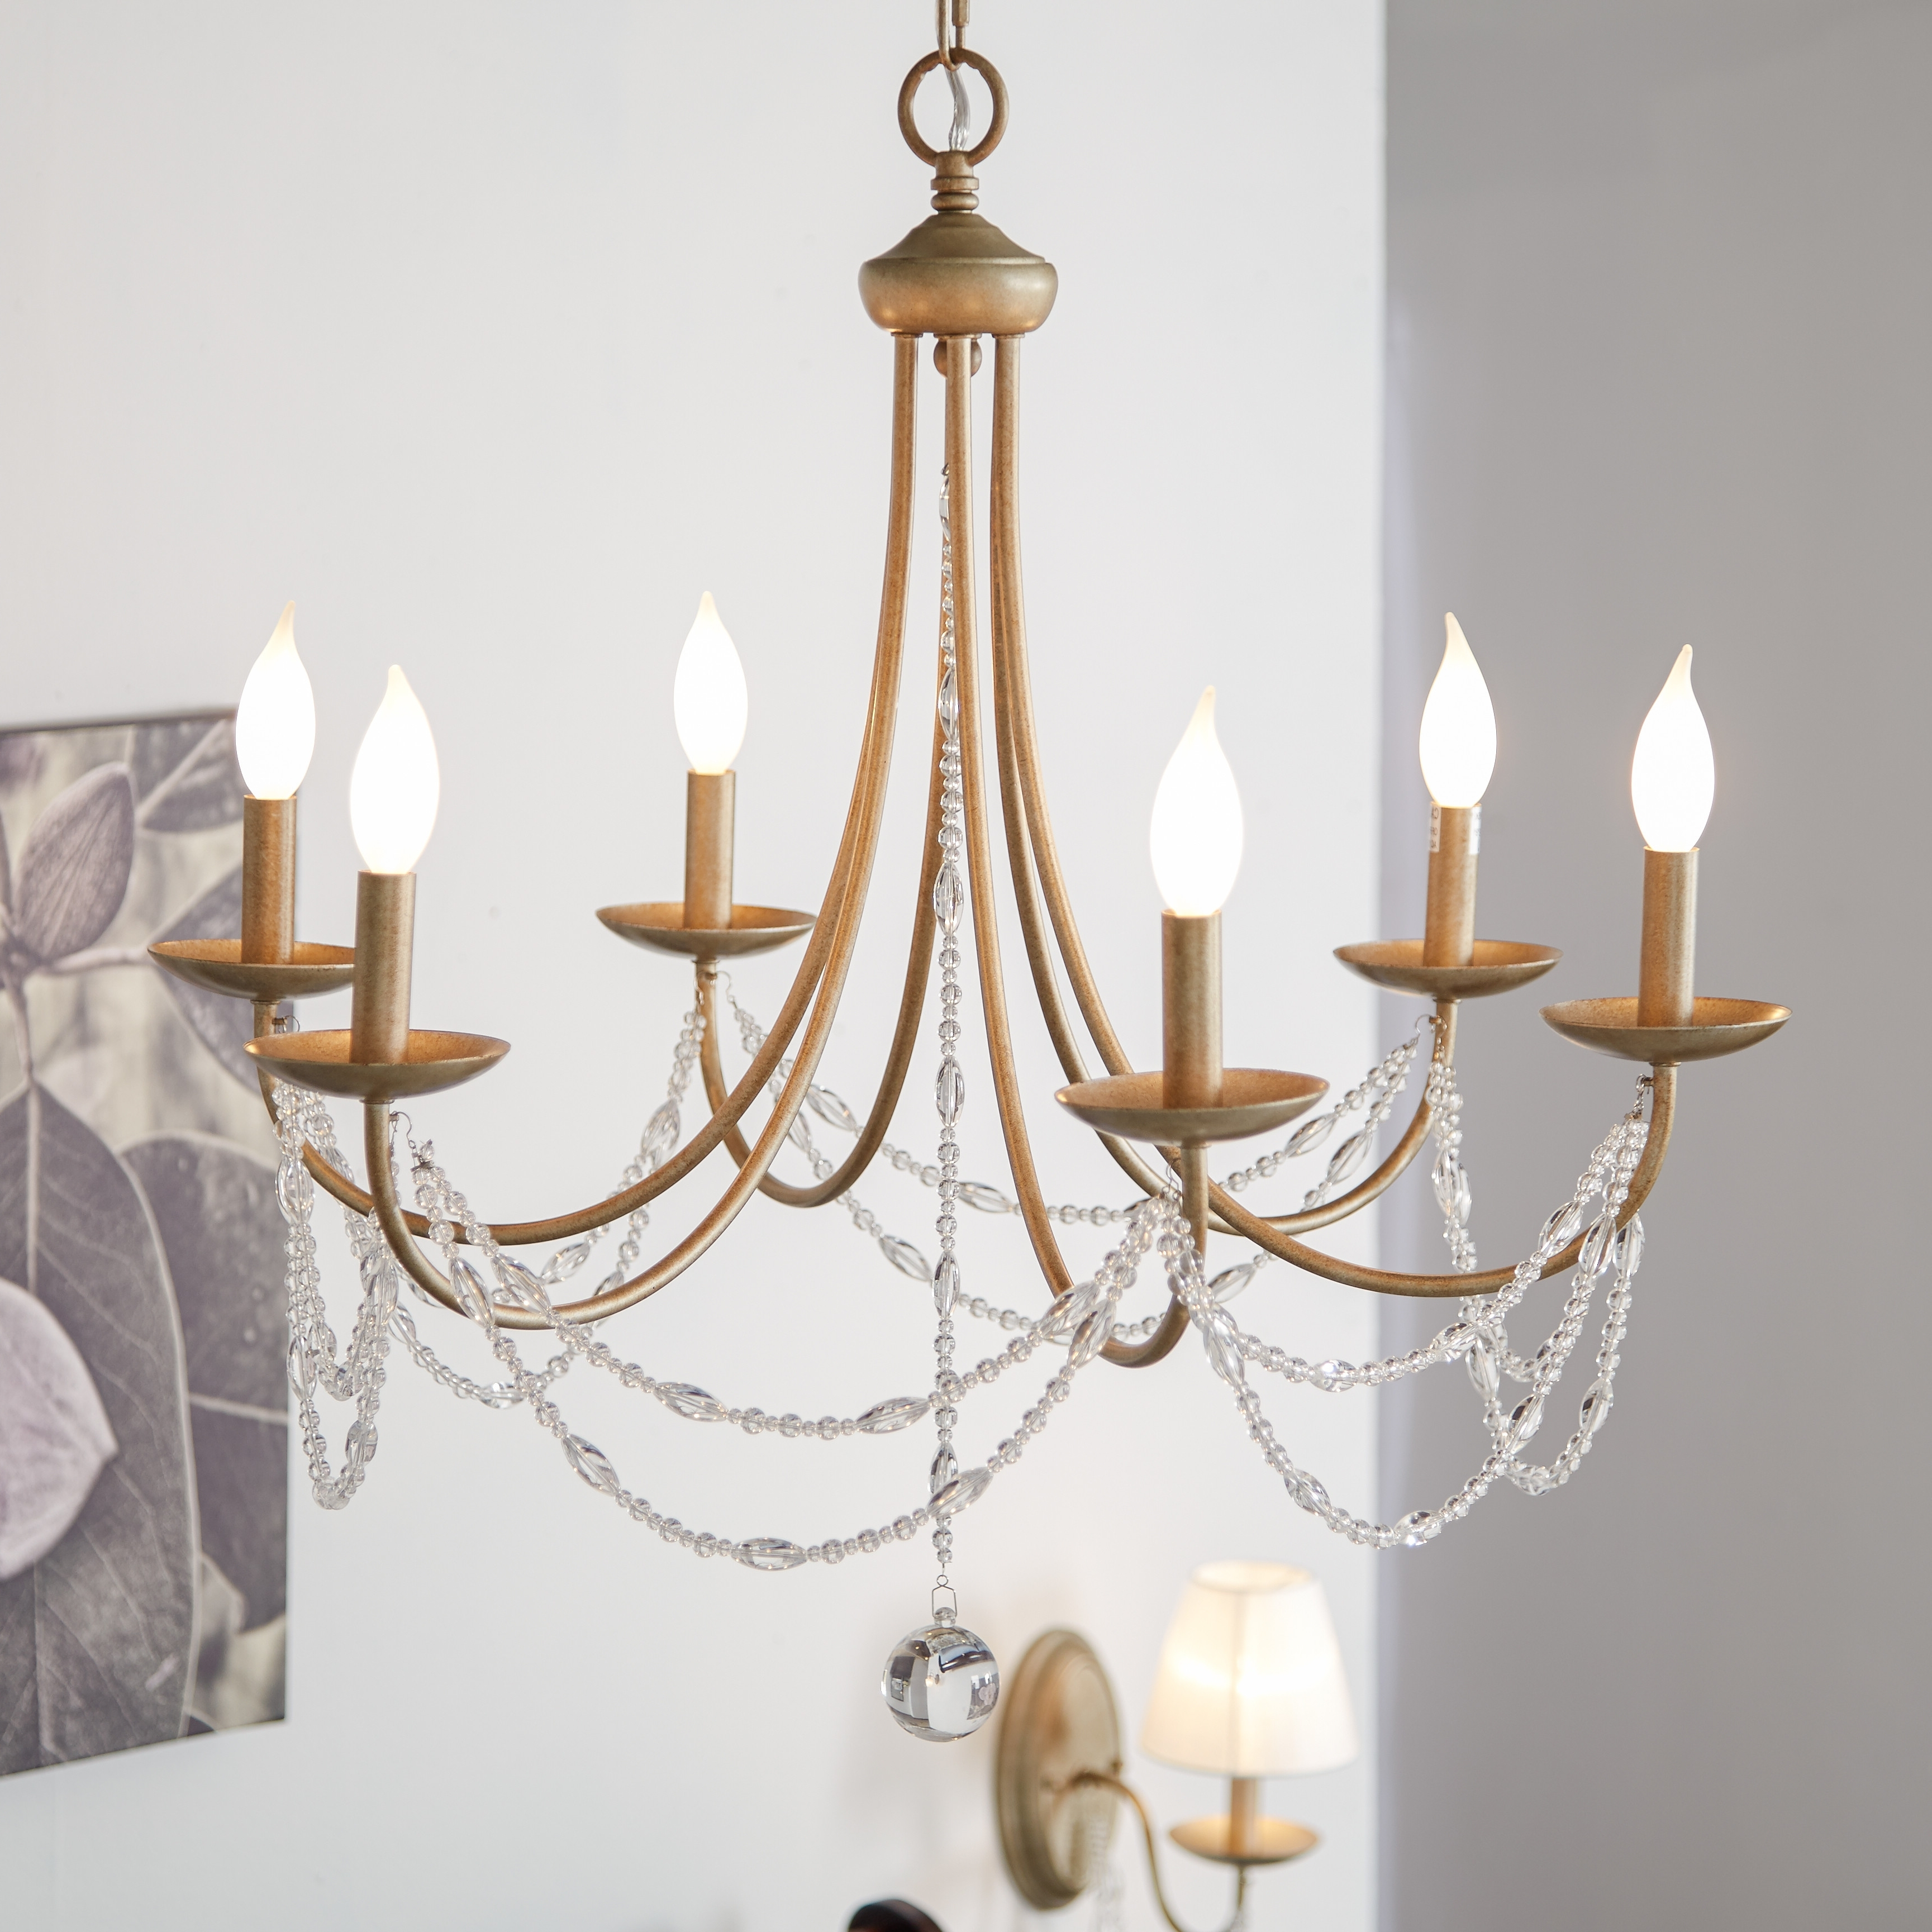 Hanging Candelabra Chandeliers For Well Known Lighting: Wonderful Candle Chandelier Non Electric For Modern Lights (View 13 of 20)